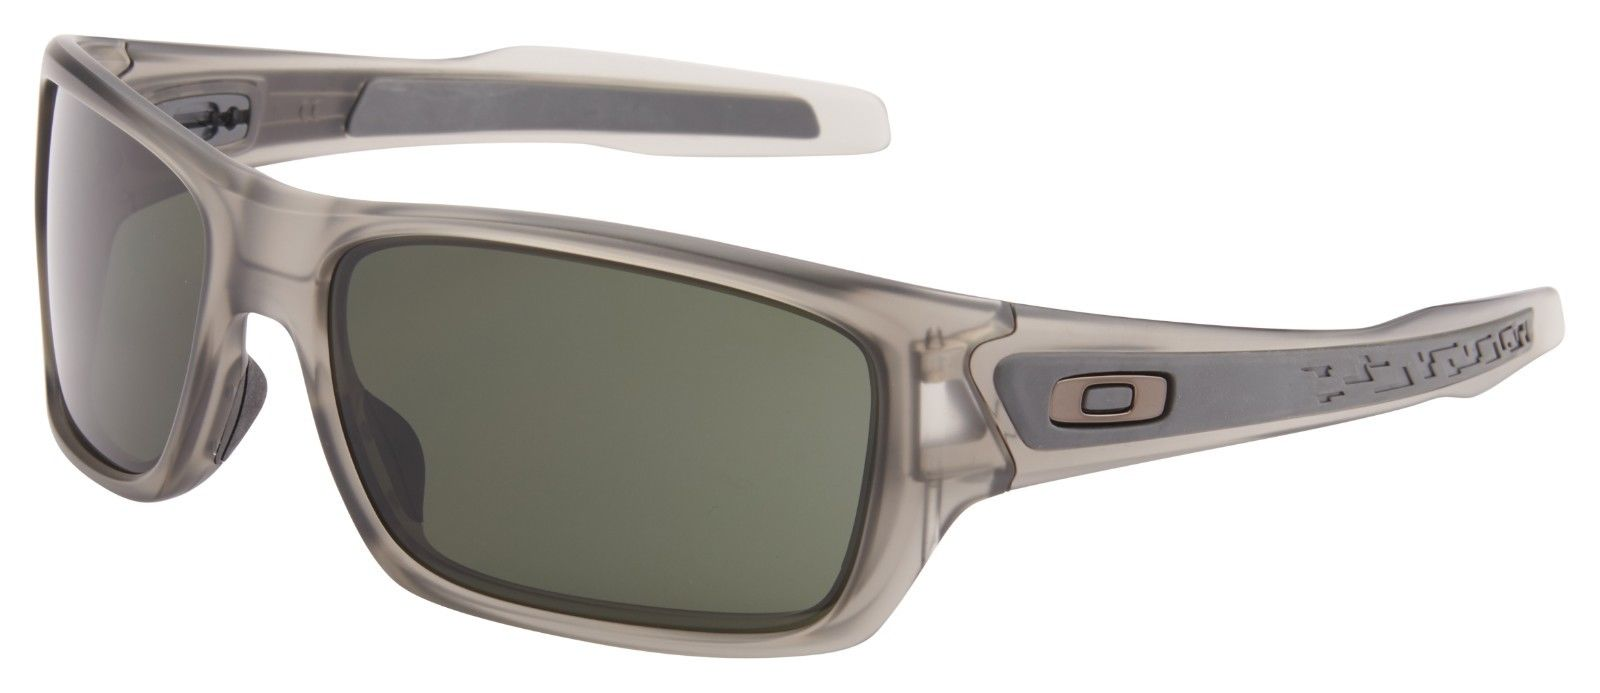 aa0893dee6 Oakley Turbine Sunglasses